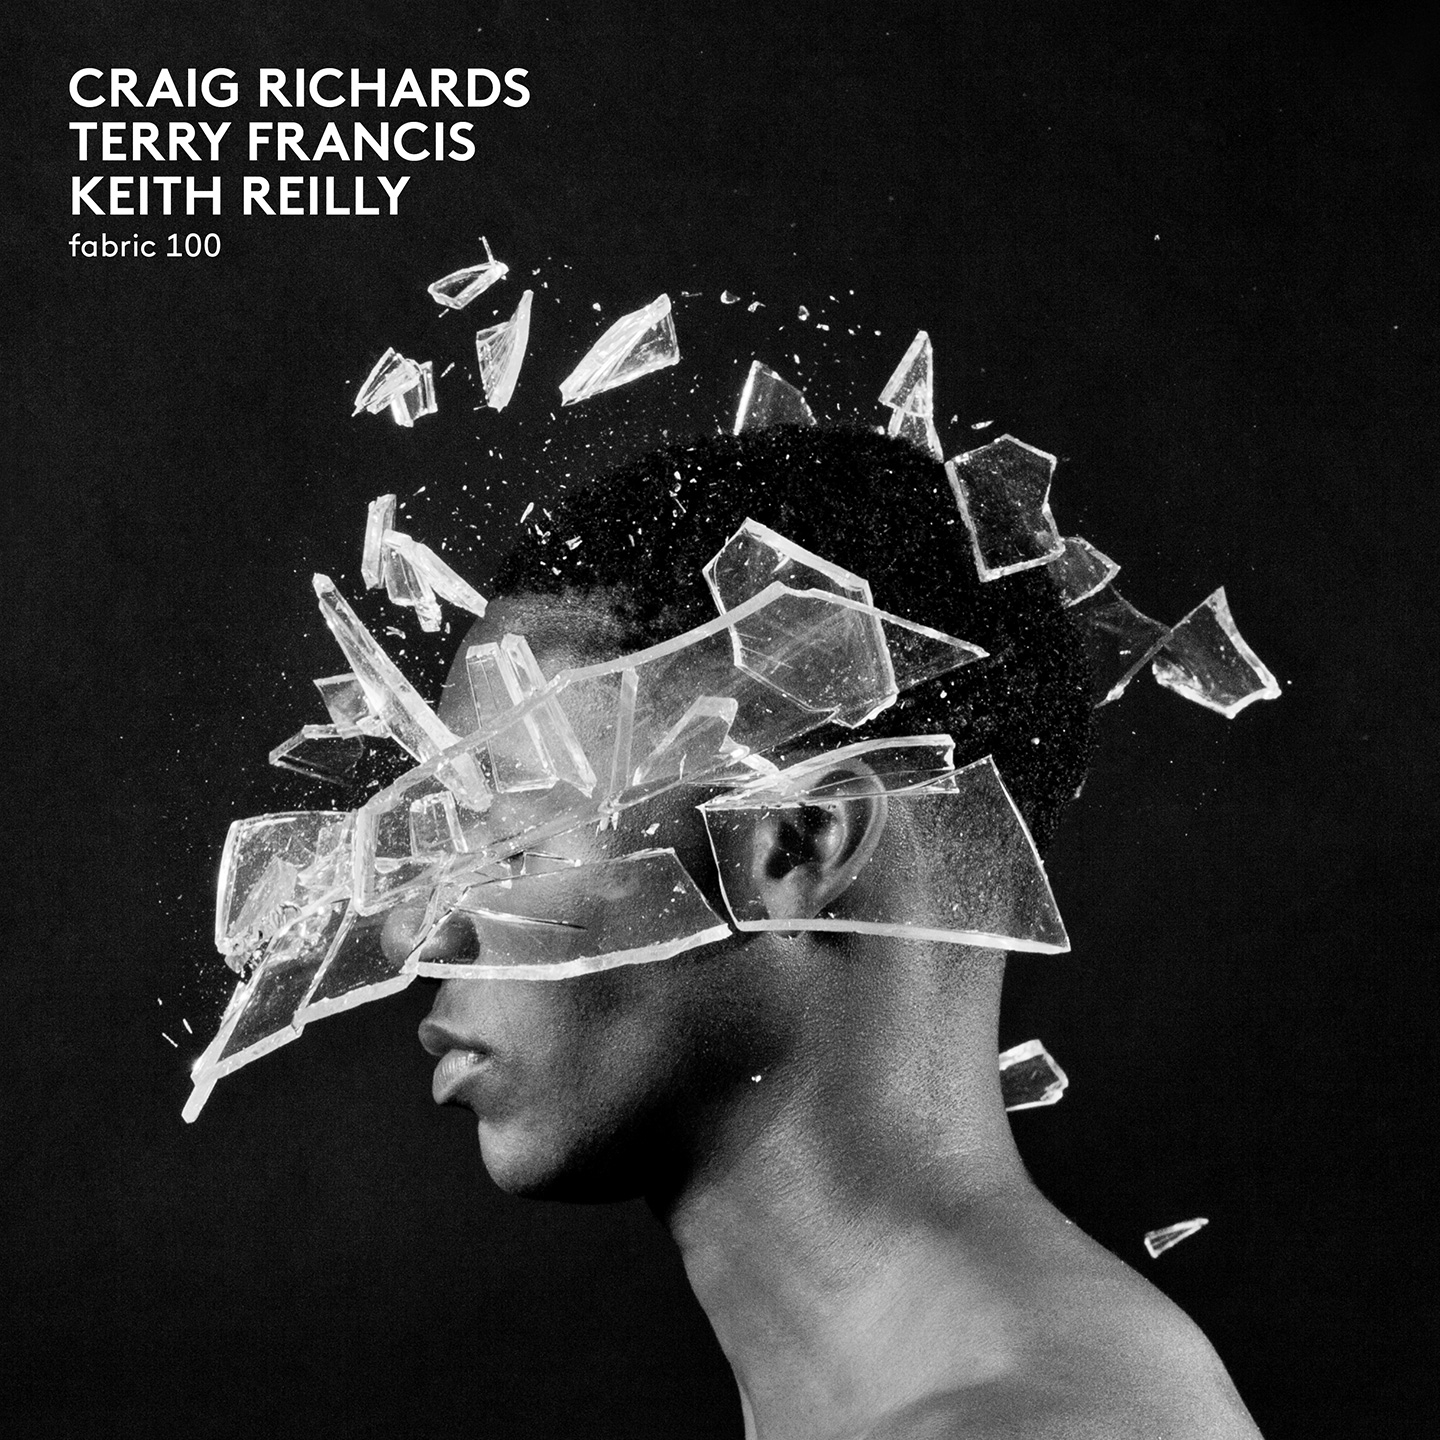 Craig Richards, Terry Francis & Keith Reilly - fabric 100